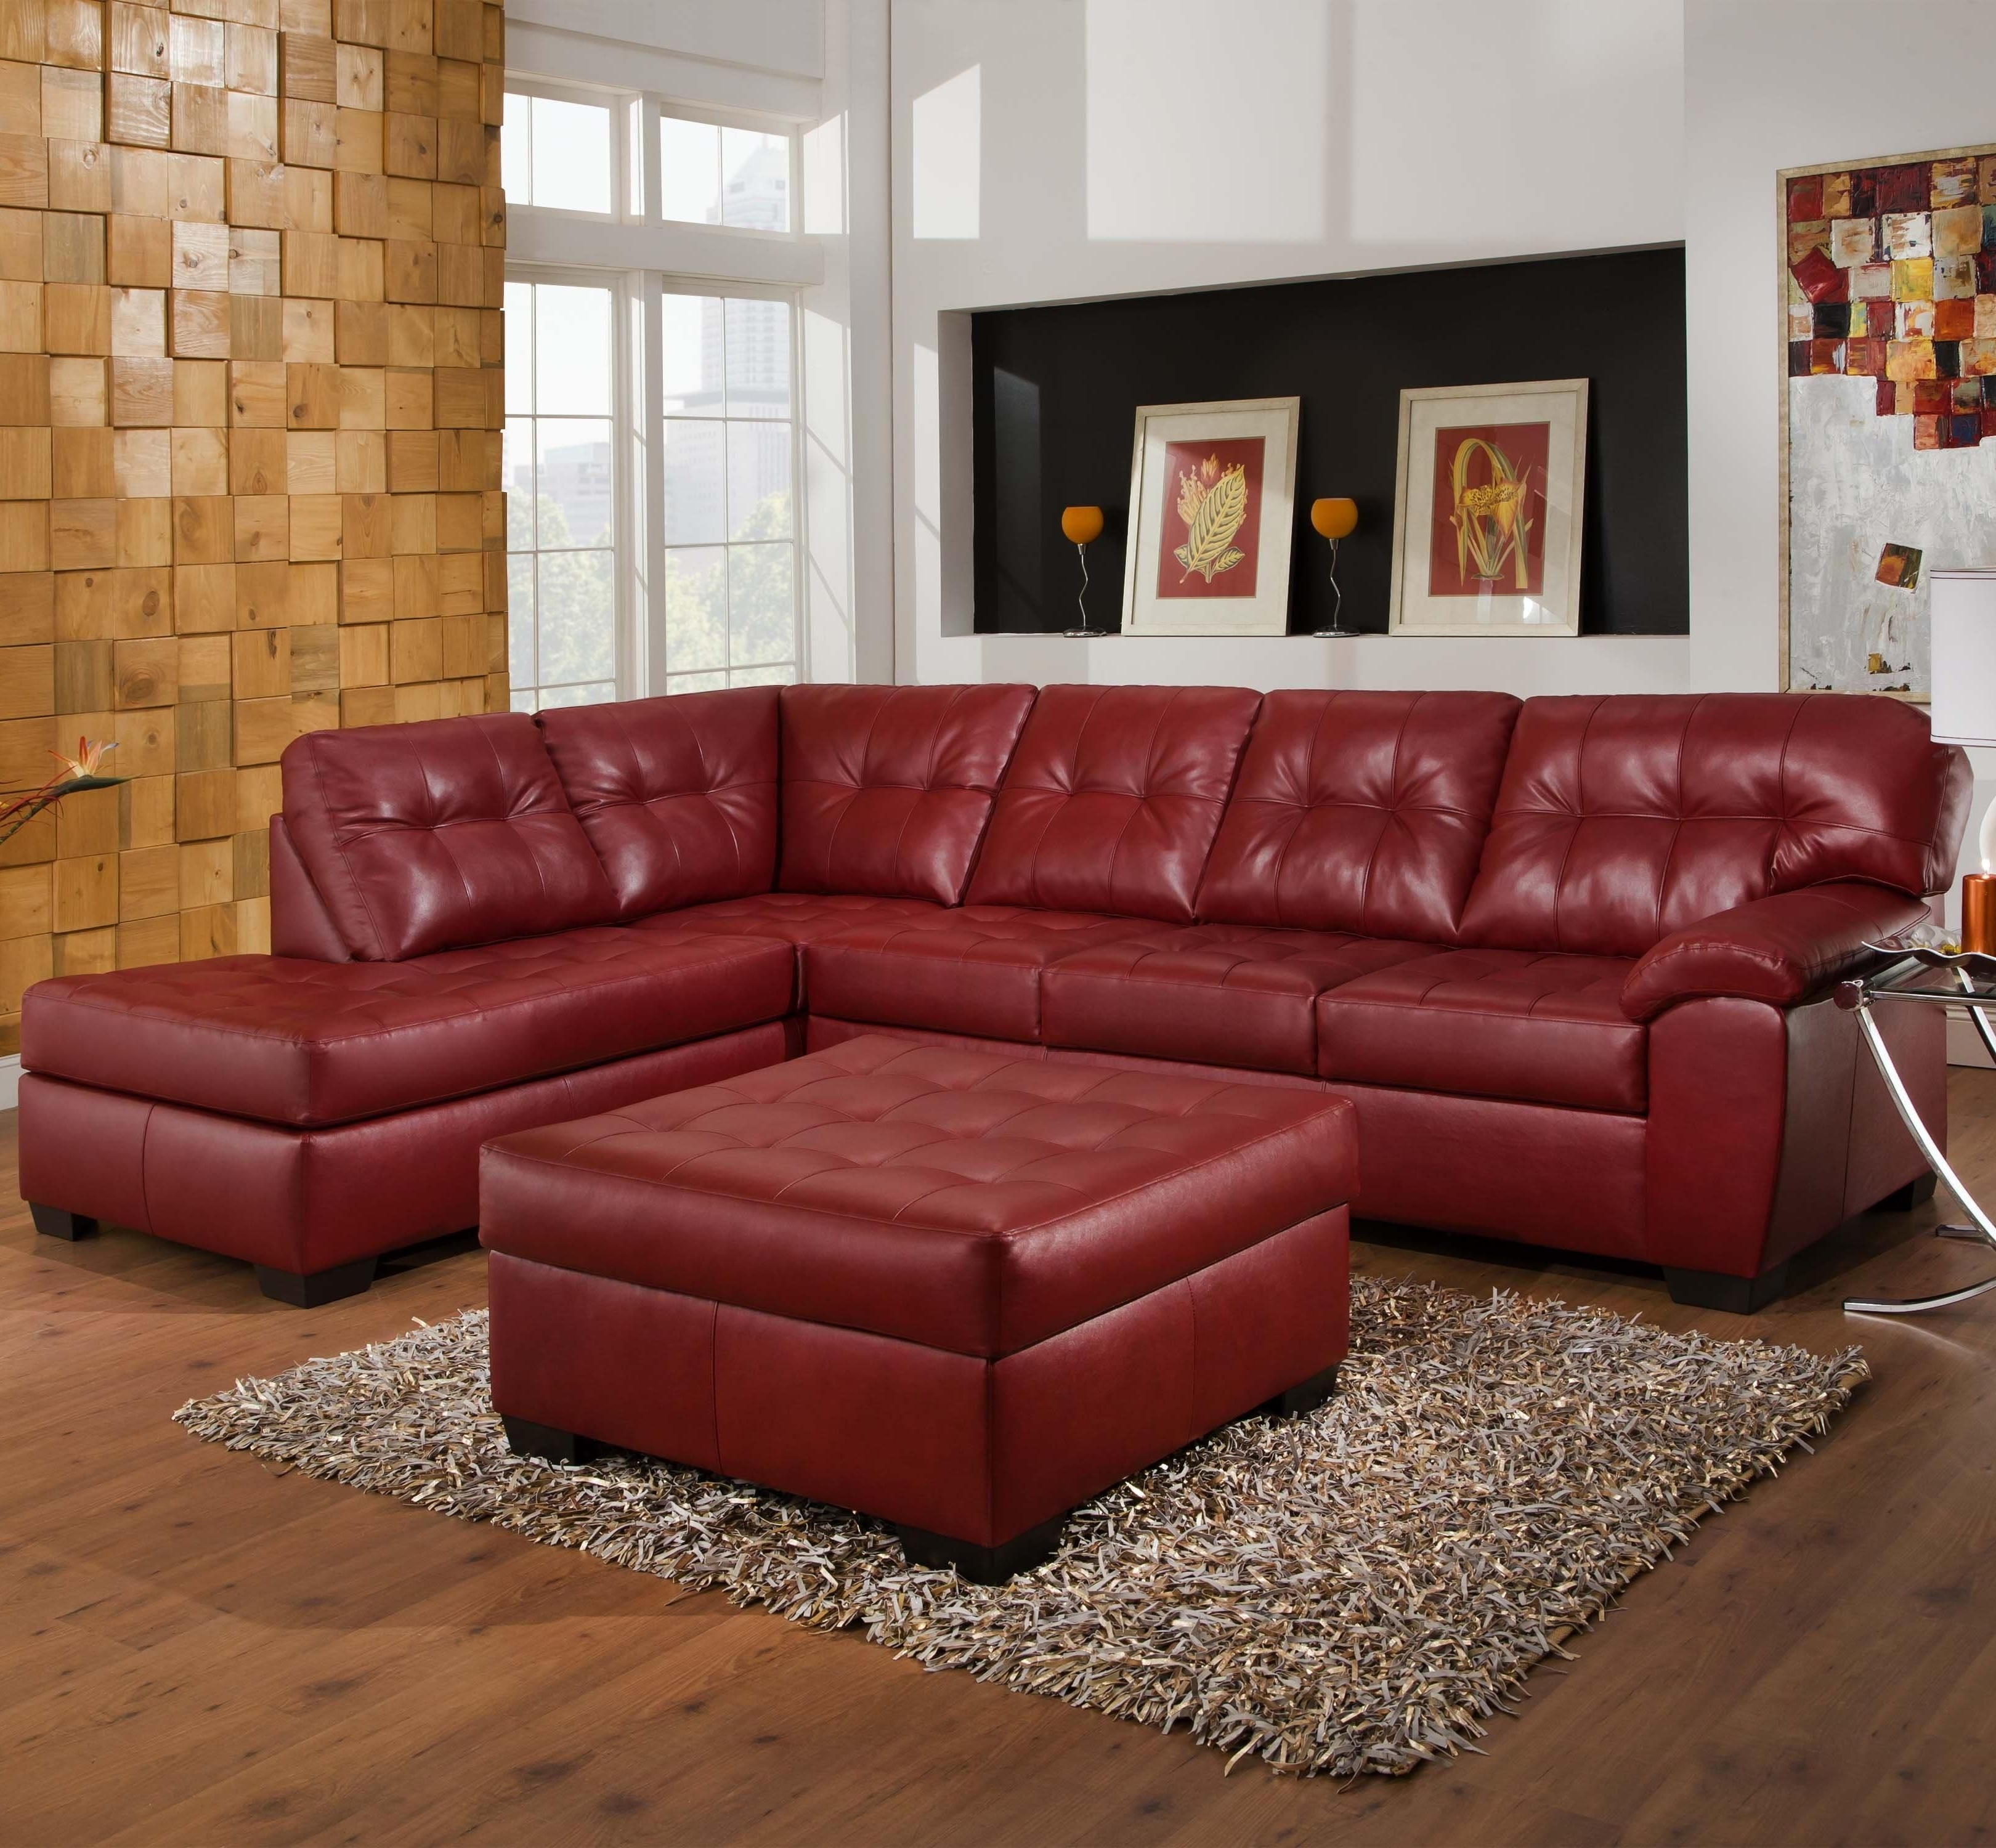 9569 2 Piece Sectional With Tufted Seats & Backsimmons Inside Most Popular Rochester Ny Sectional Sofas (Gallery 13 of 20)